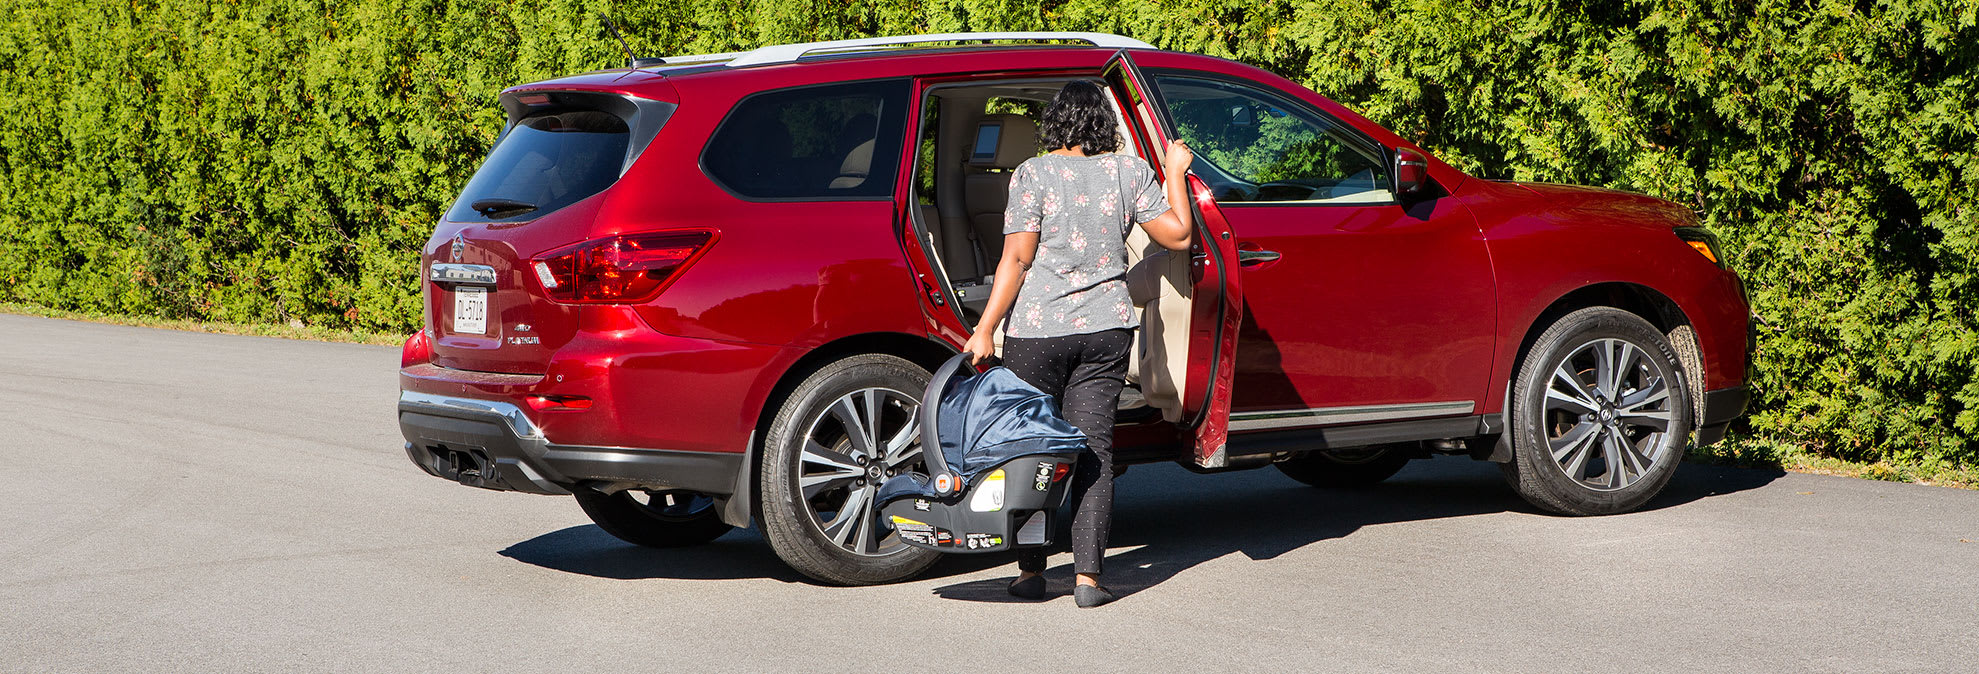 Nissan rear door alert aims to prevent child deaths in hot cars